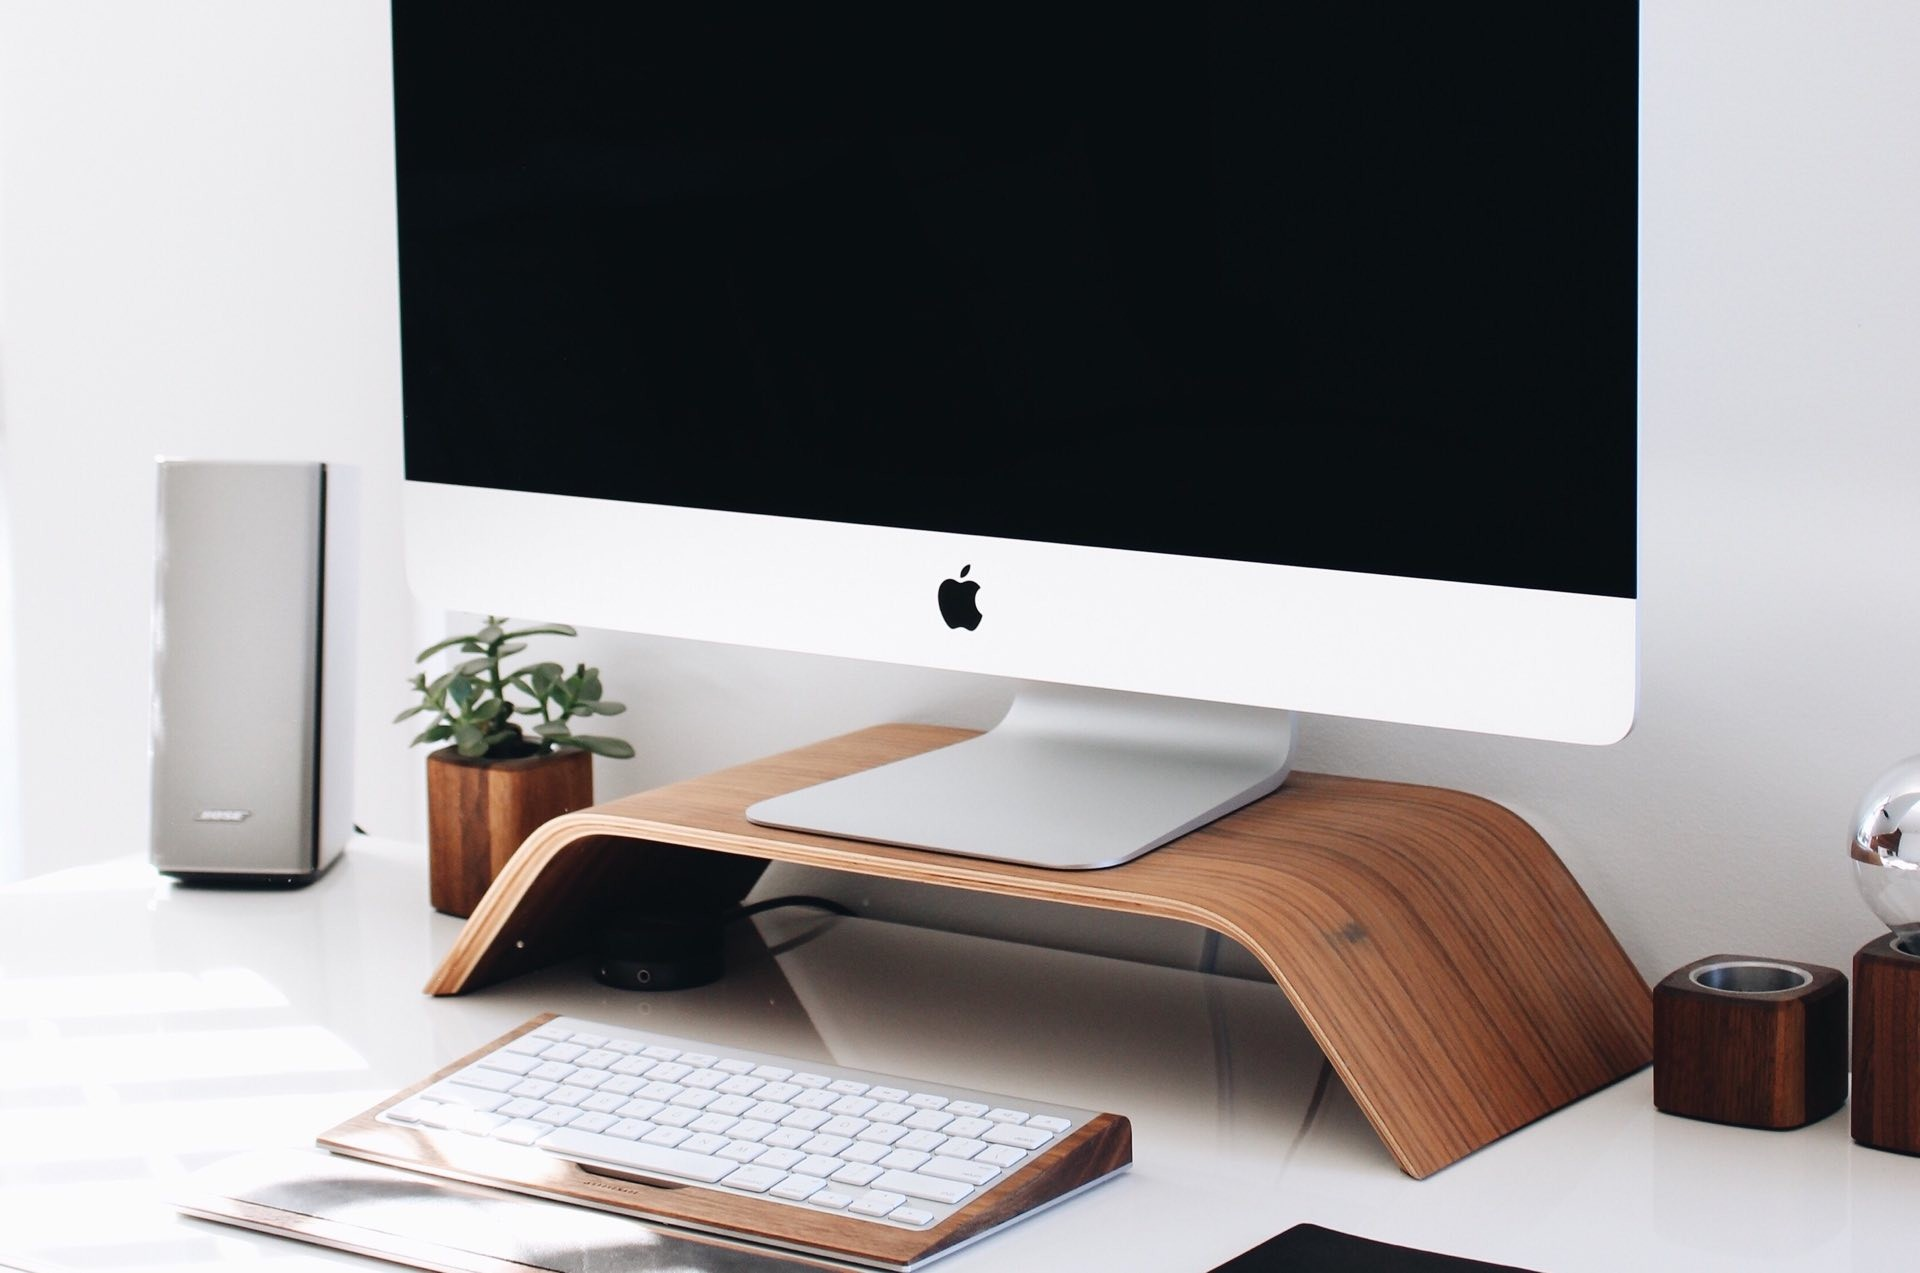 five-minimalist-workspace-accessories-guide-hero-gabriel-beaudry